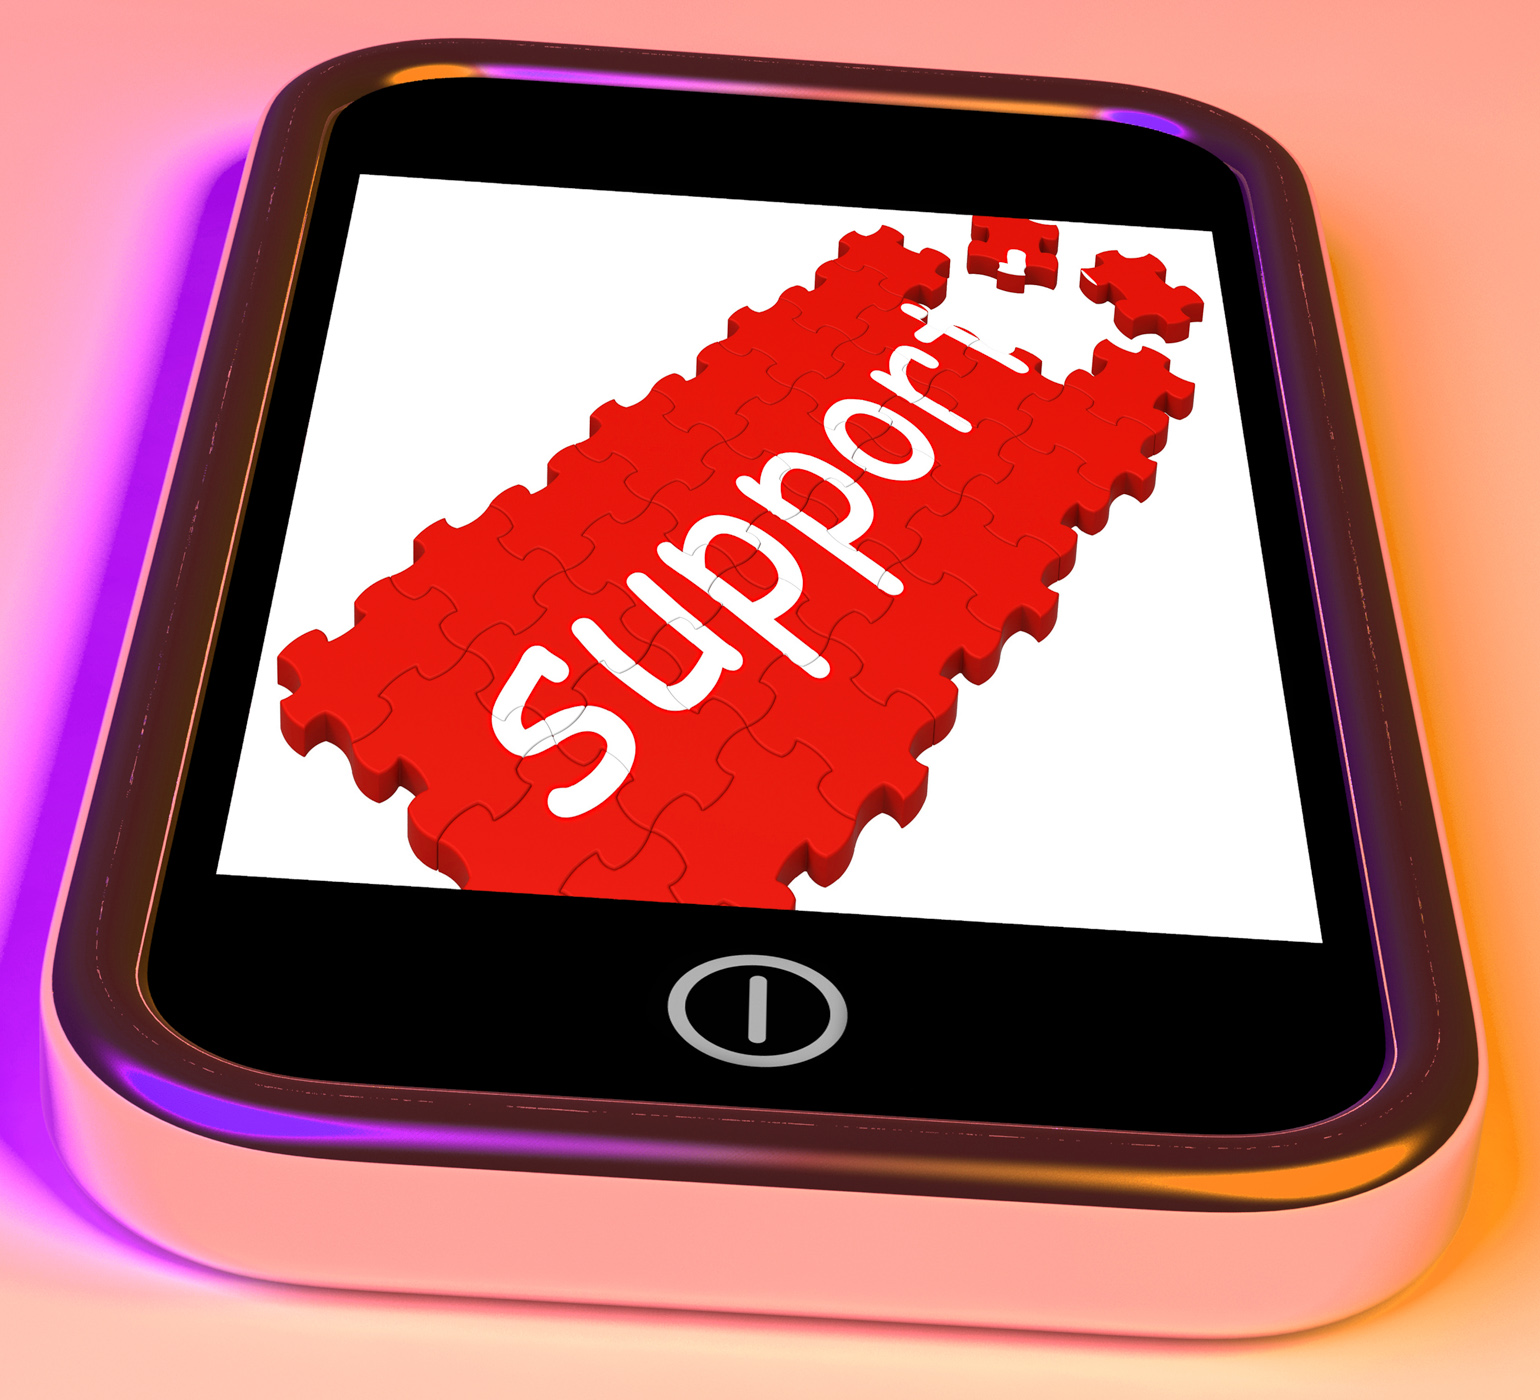 Support on smartphone showing cellphones customer service photo